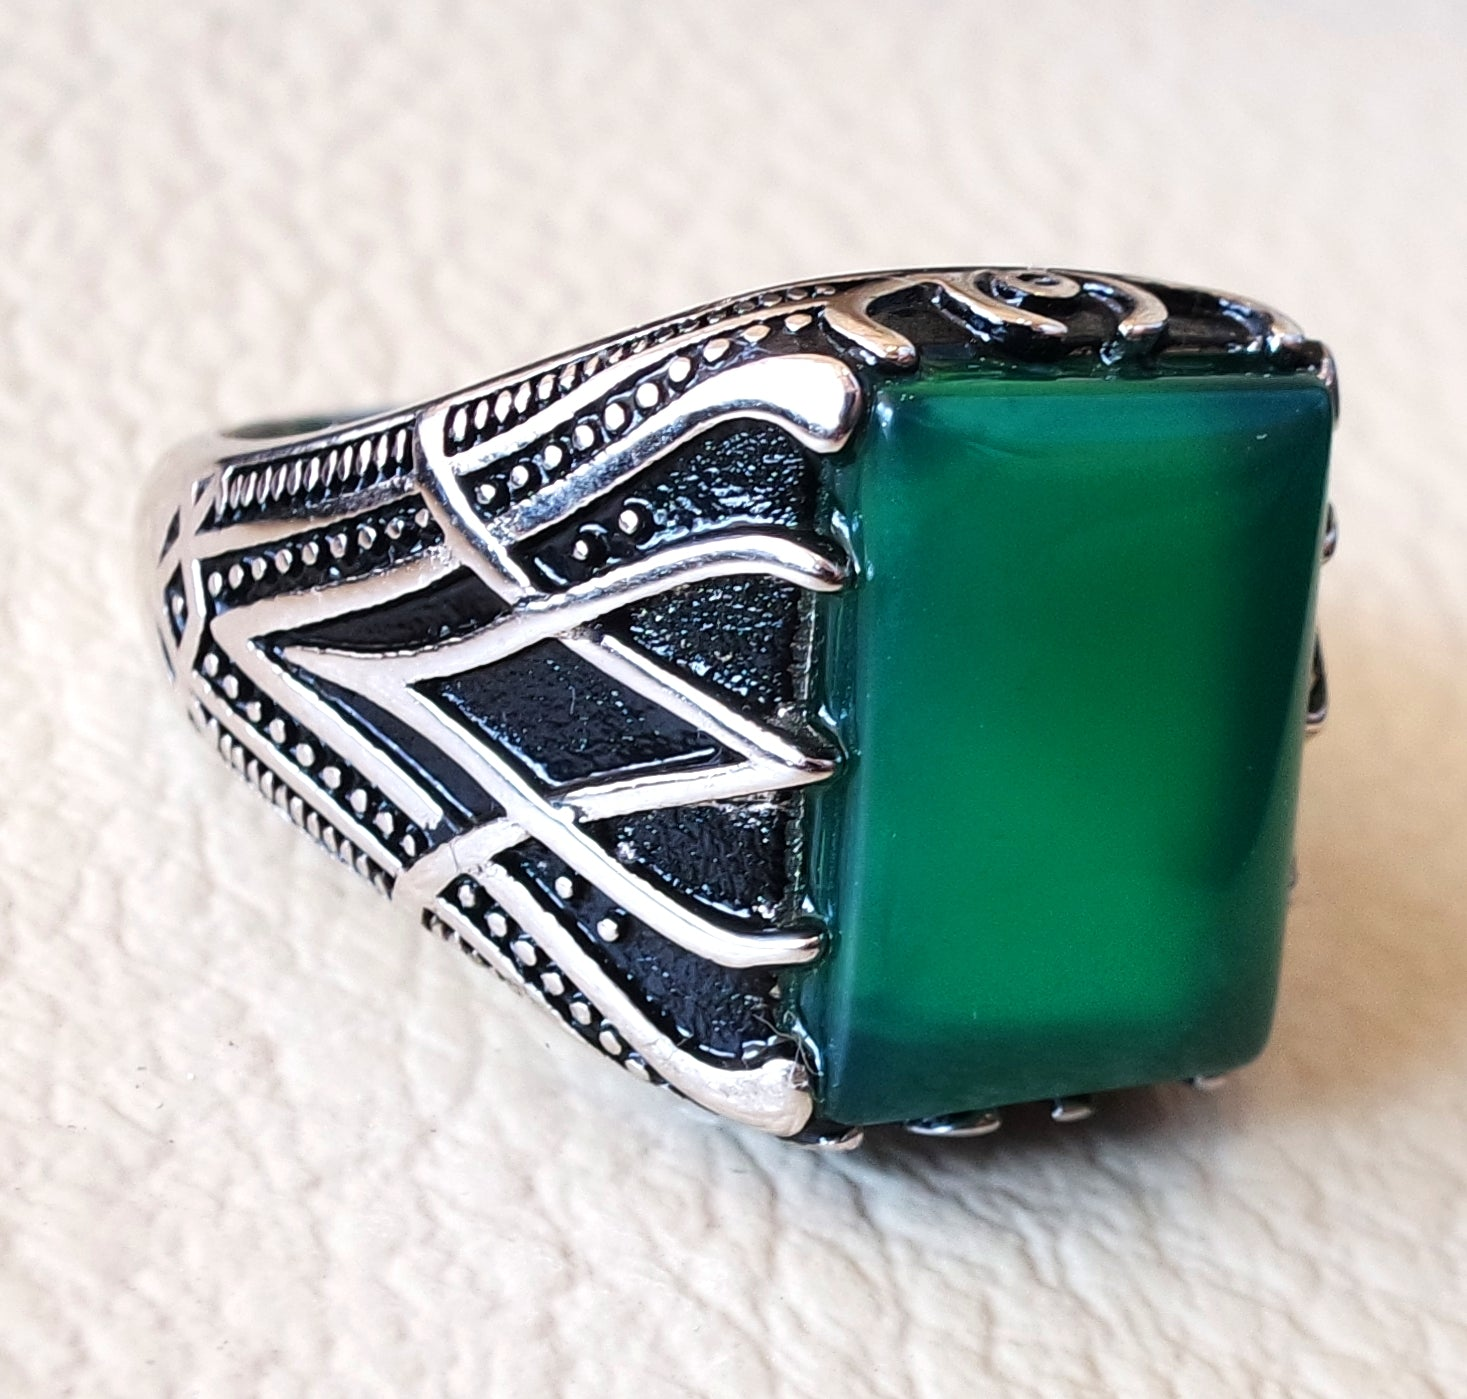 ottoman green onyx agate aqeeq sterling silver 925 antique men ring arabic jewelry any size fast shipping natural rectangular stone